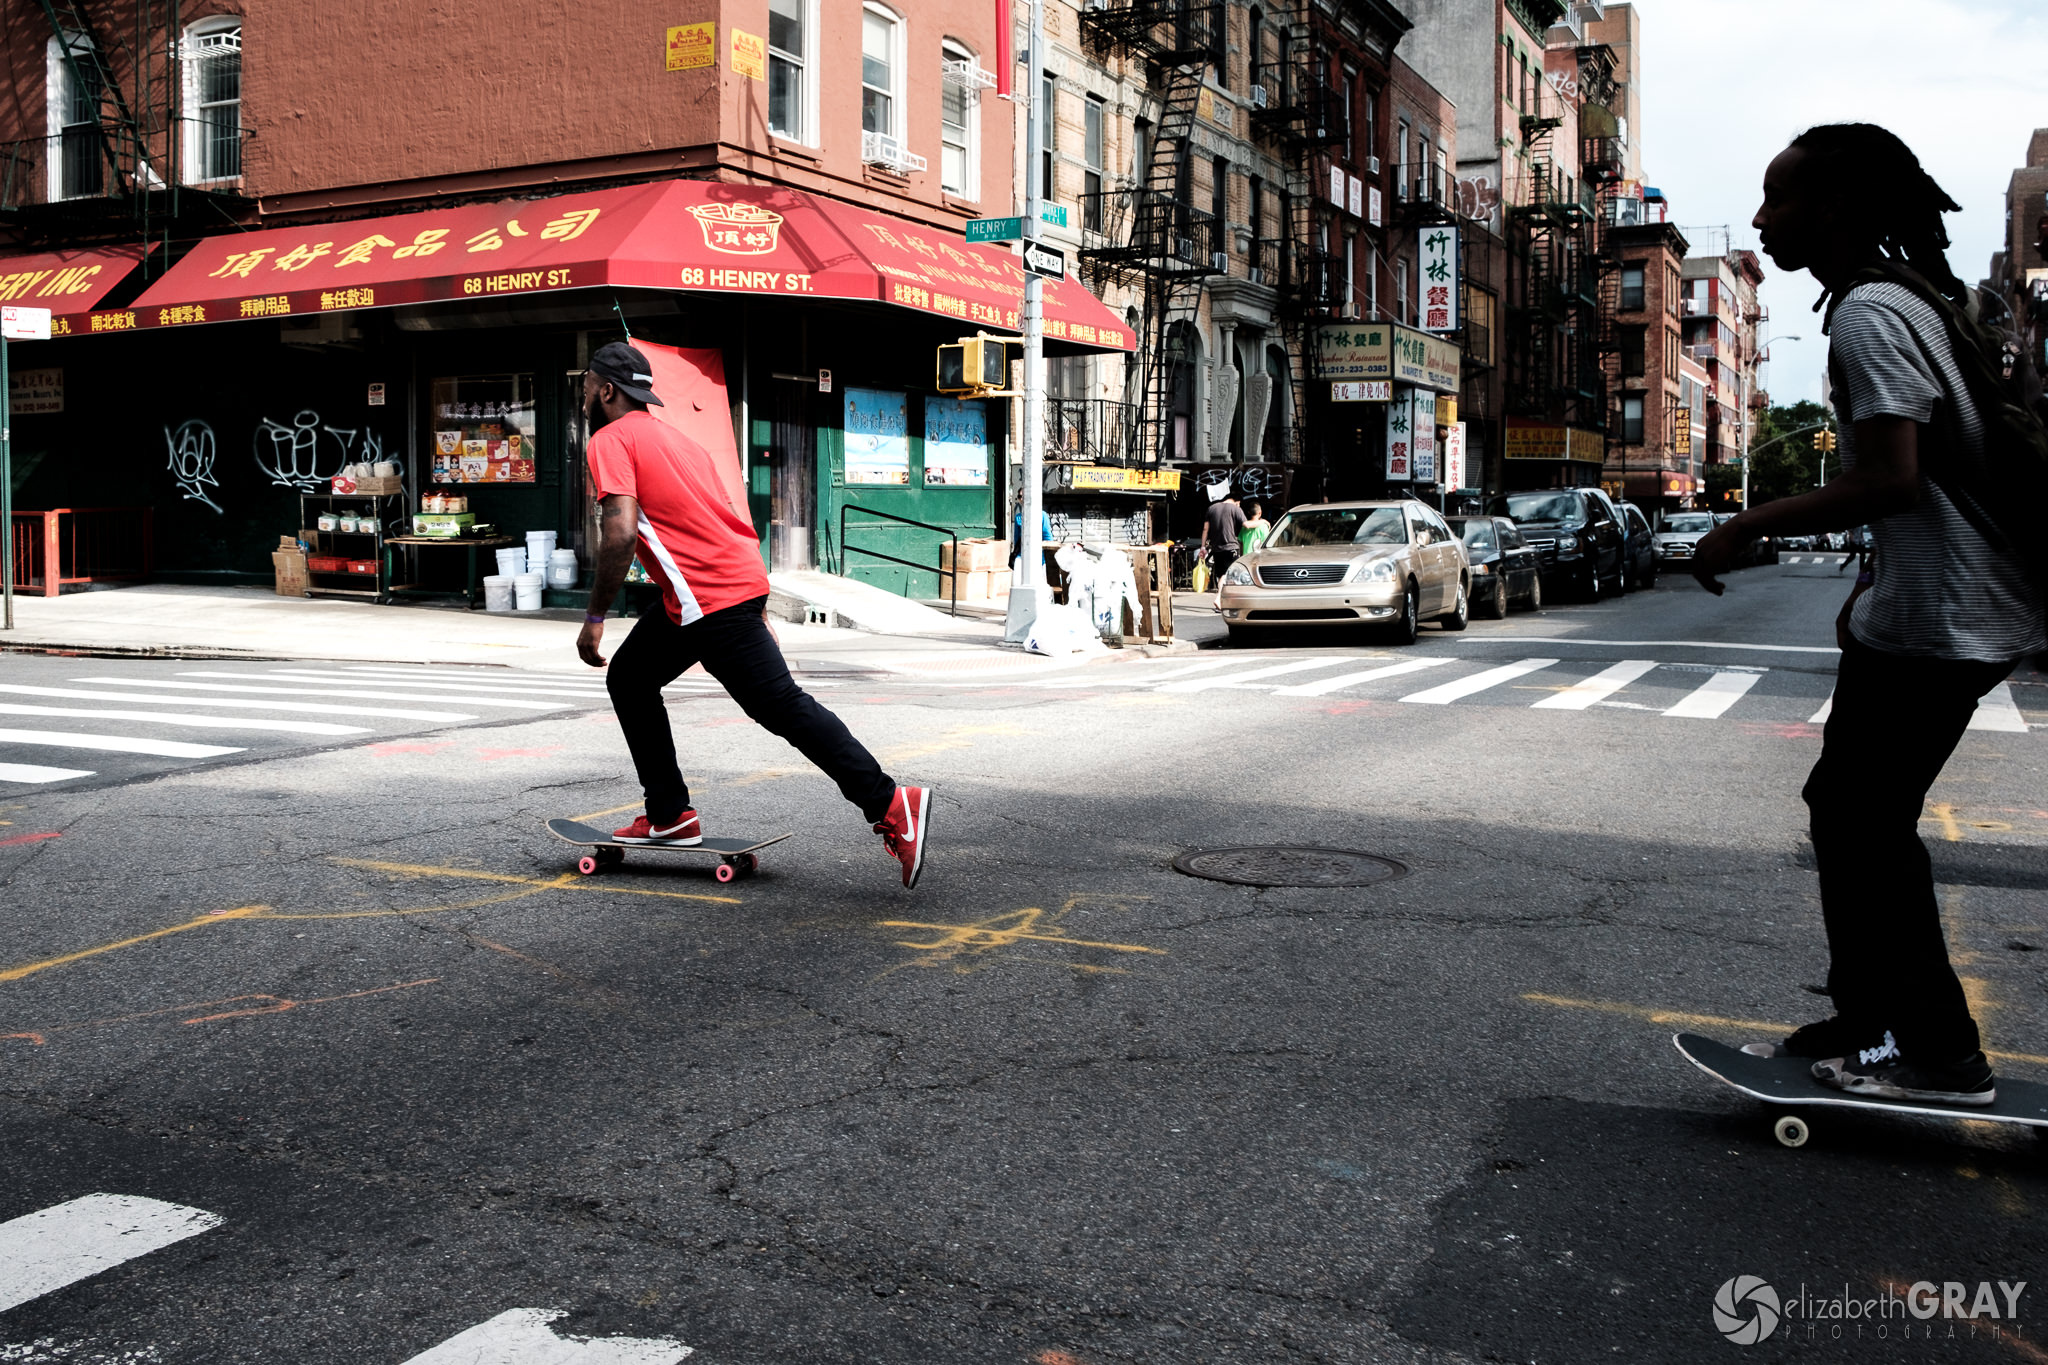 Chinatown Skateboarders